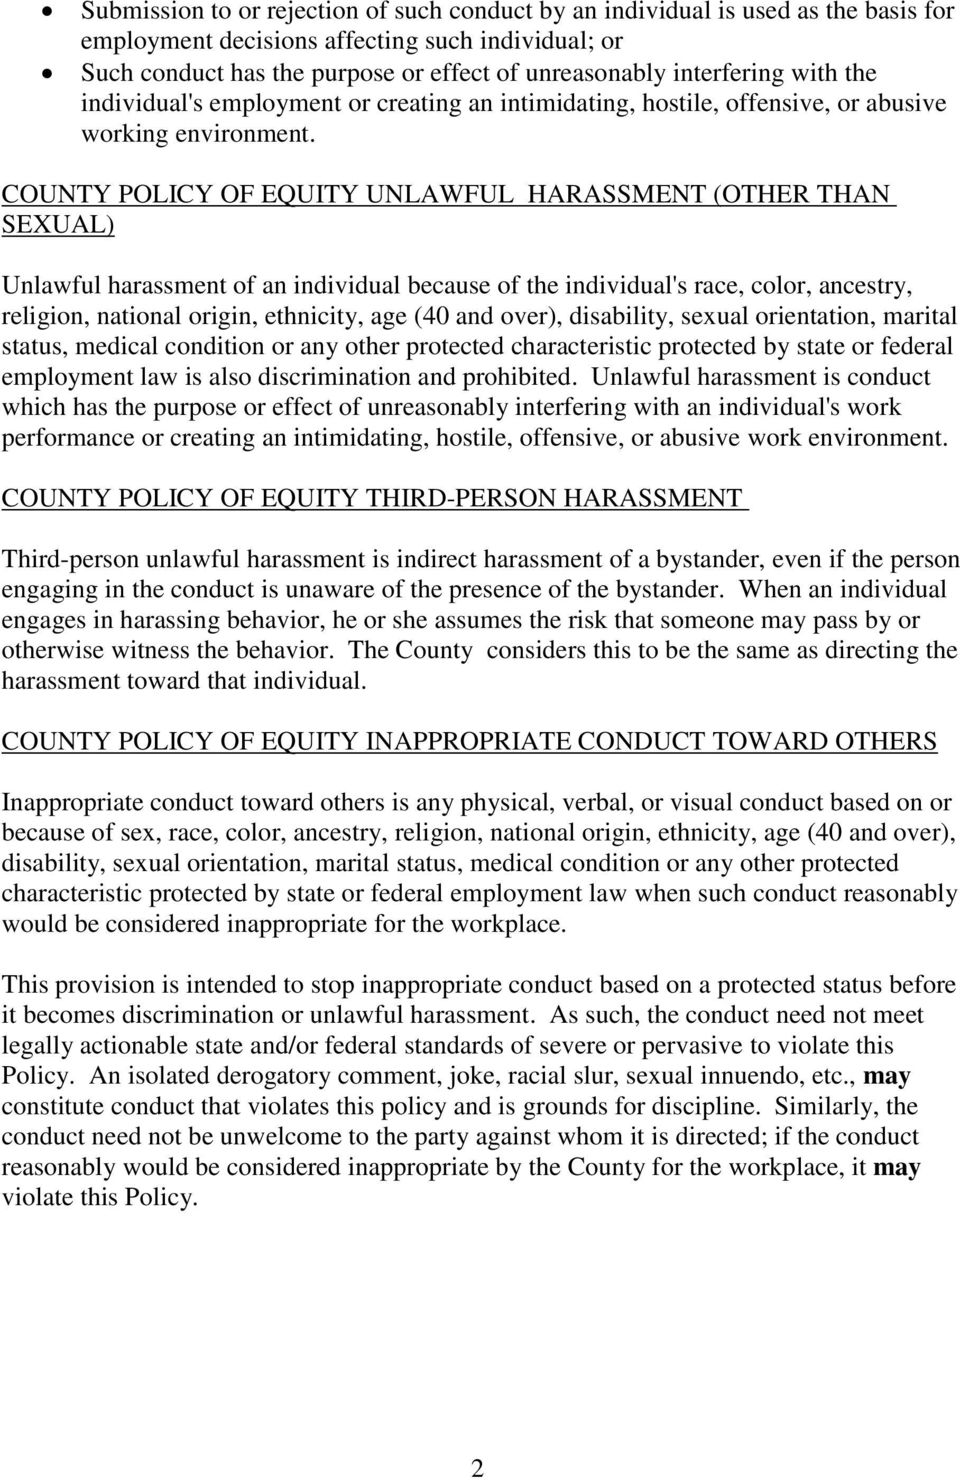 COUNTY POLICY OF EQUITY UNLAWFUL HARASSMENT (OTHER THAN SEXUAL) Unlawful harassment of an individual because of the individual's race, color, ancestry, religion, national origin, ethnicity, age (40